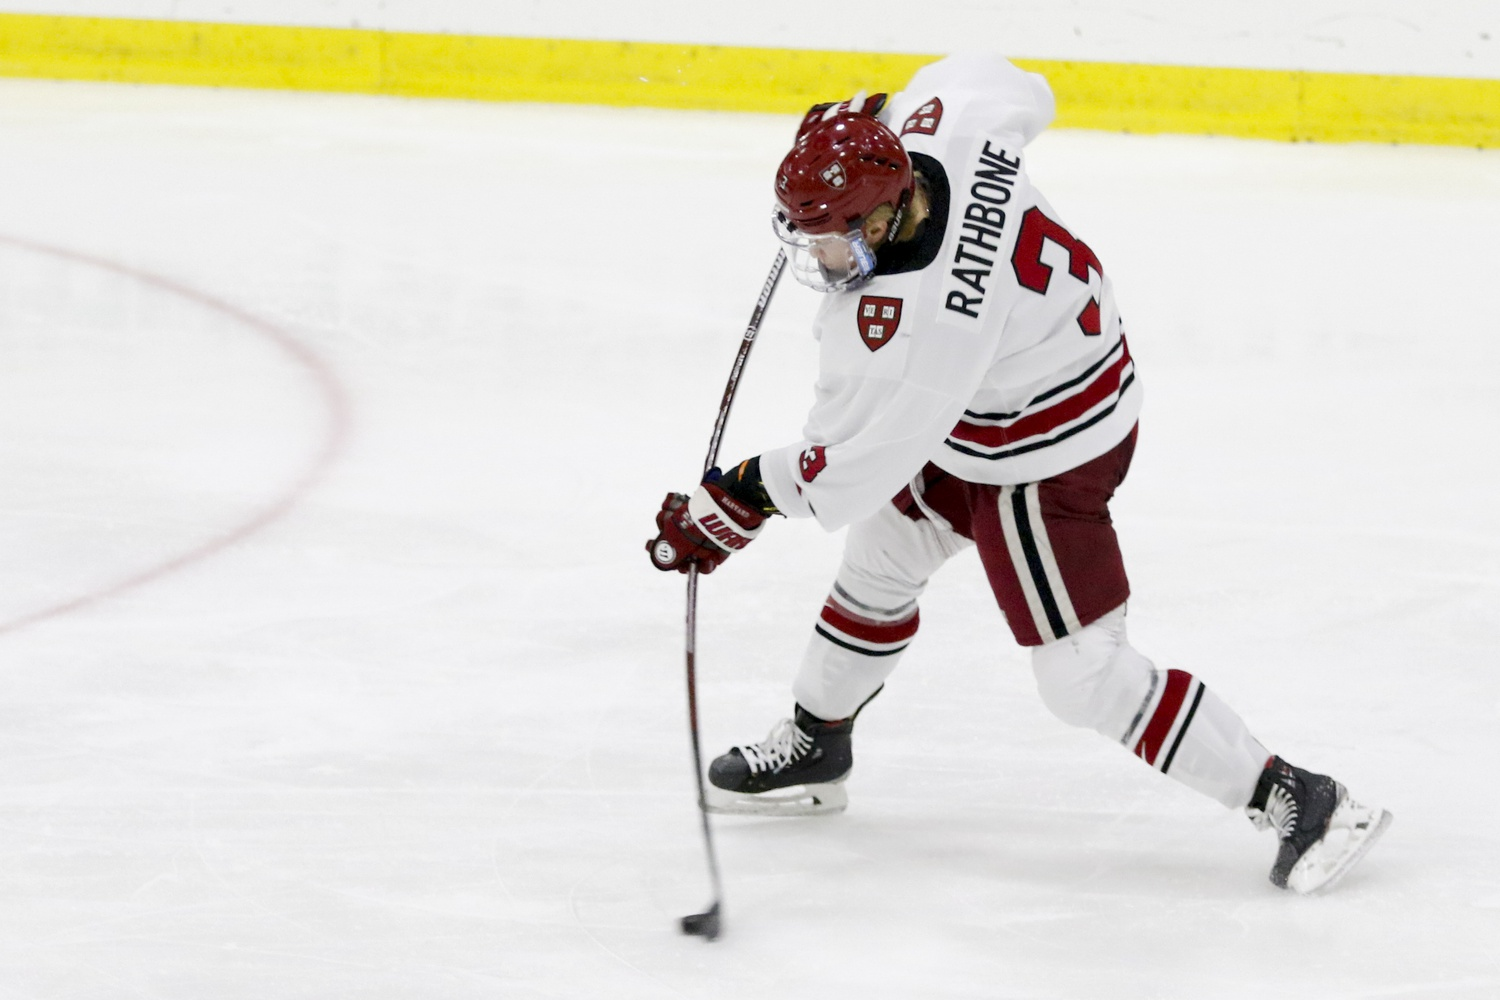 Harvard's power play went 3-for-5 tonight, jumpstarting the shift in momentum that carried the team to victory.